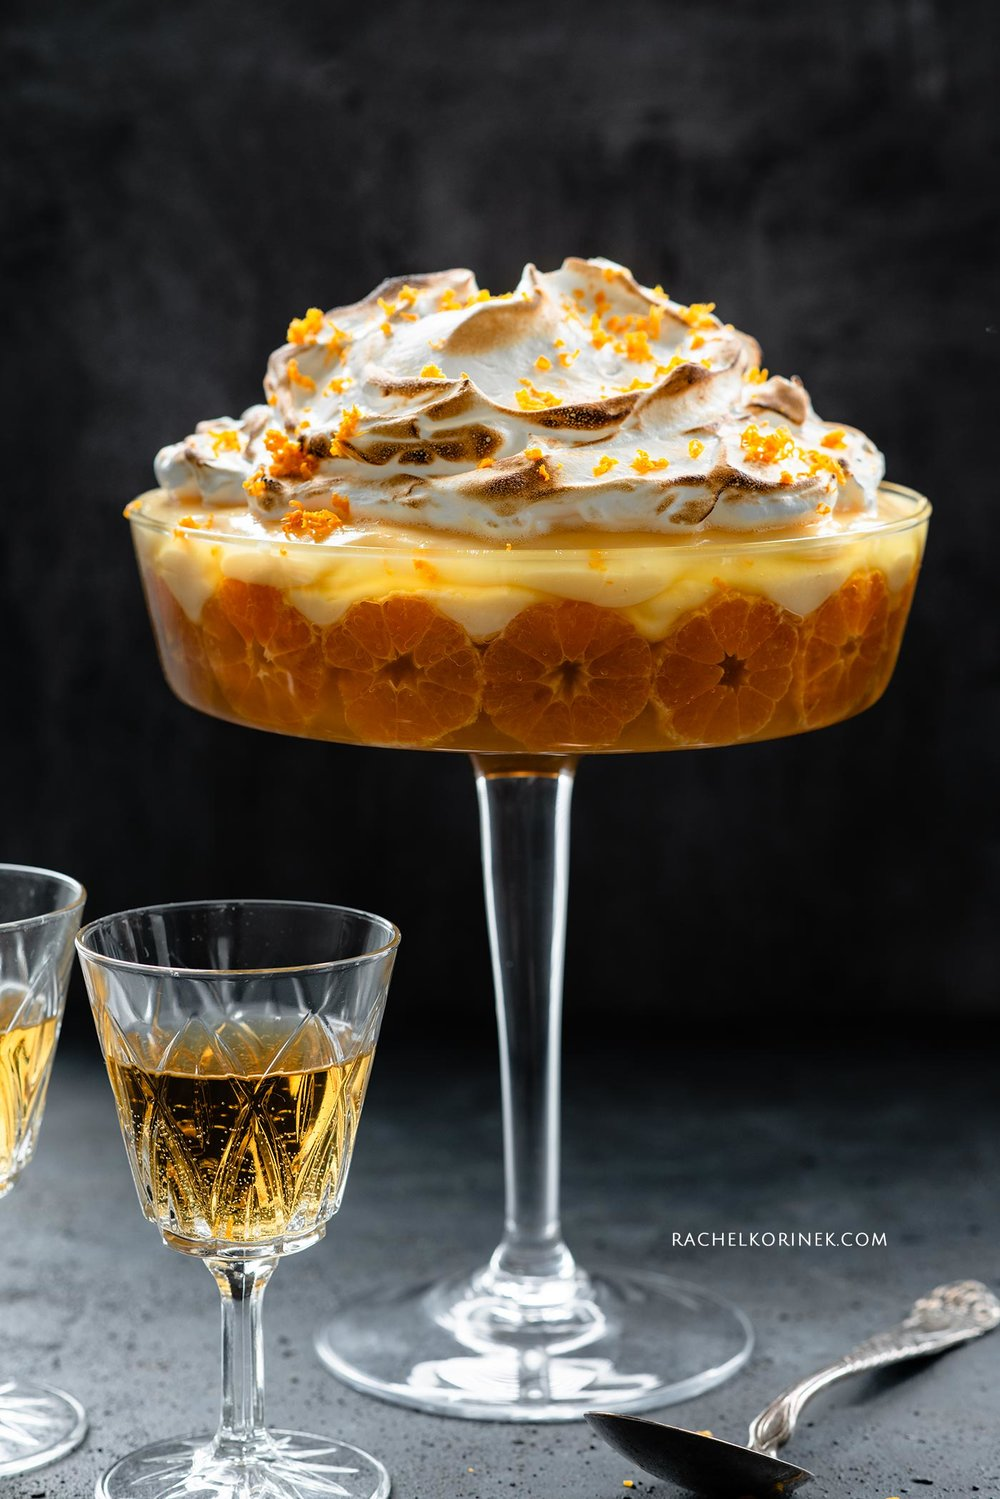 Rachel Korinek | Food Photographer Winter Clementine Trifle  Click to check out my latest food photography projects.  #twolovesstudio #beautifulcuisine #foodbloggerpro #foodphotography #learnfoodphotography #foodblogger #learnphotography #foodstyling #lightingtips #naturallight #foodphotographer